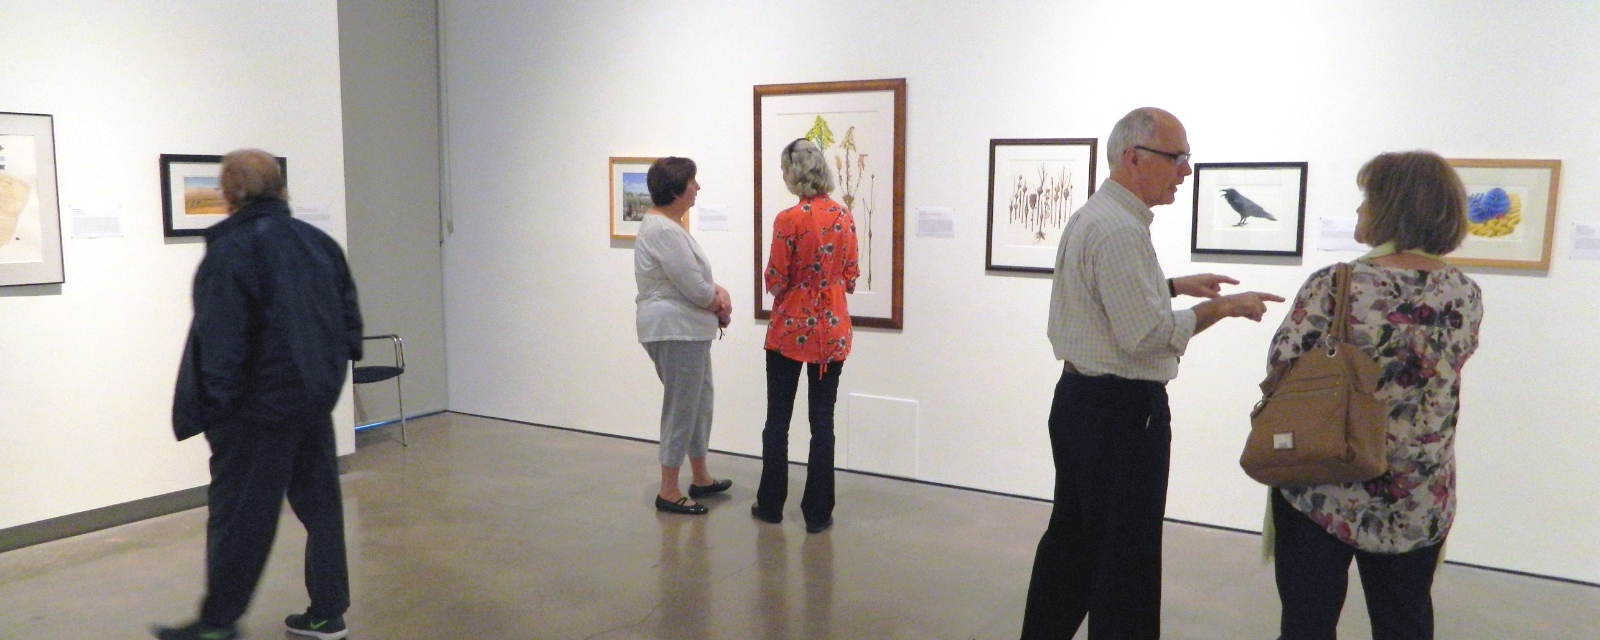 visitors looking at and discussing artwork on the walls at the Grimsby Public Art Gallery